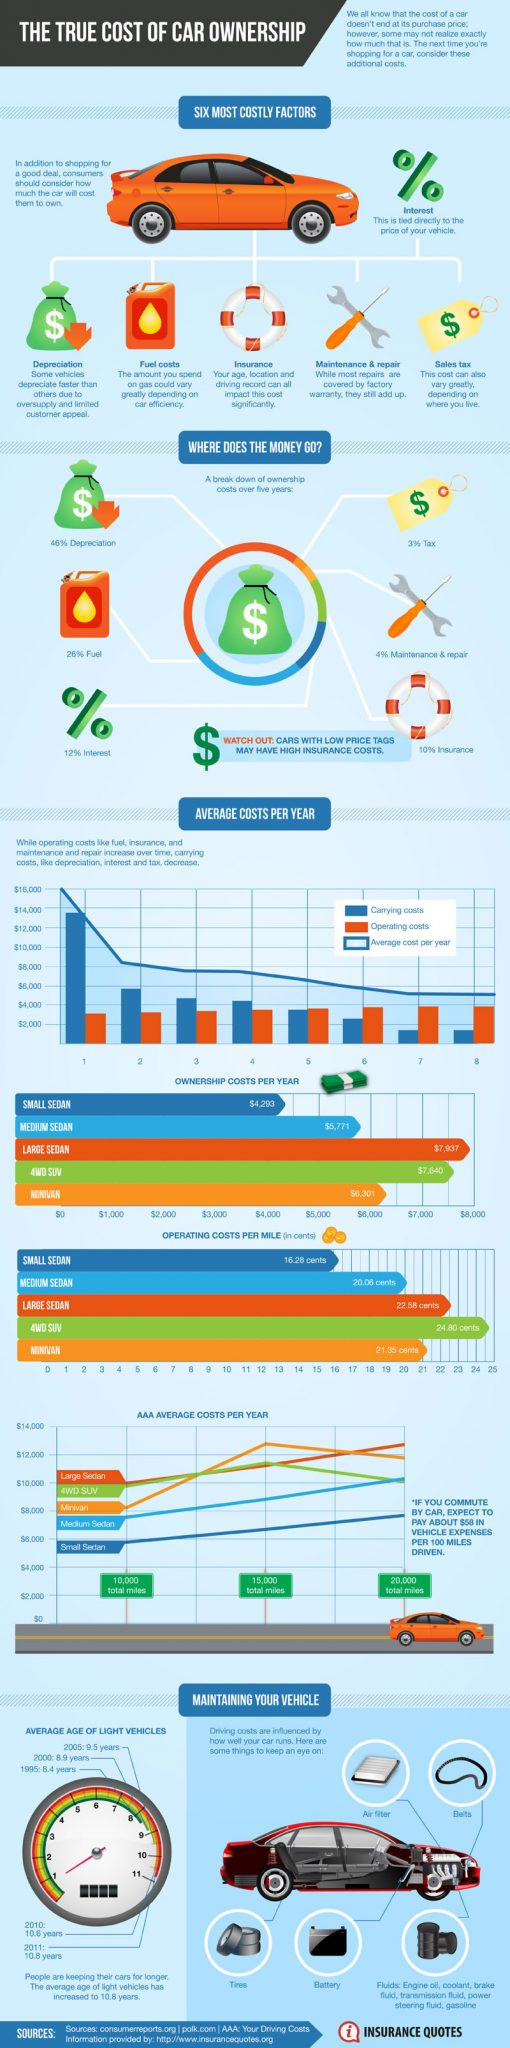 Valley Chevy - True Cost of Car Ownership Infographic